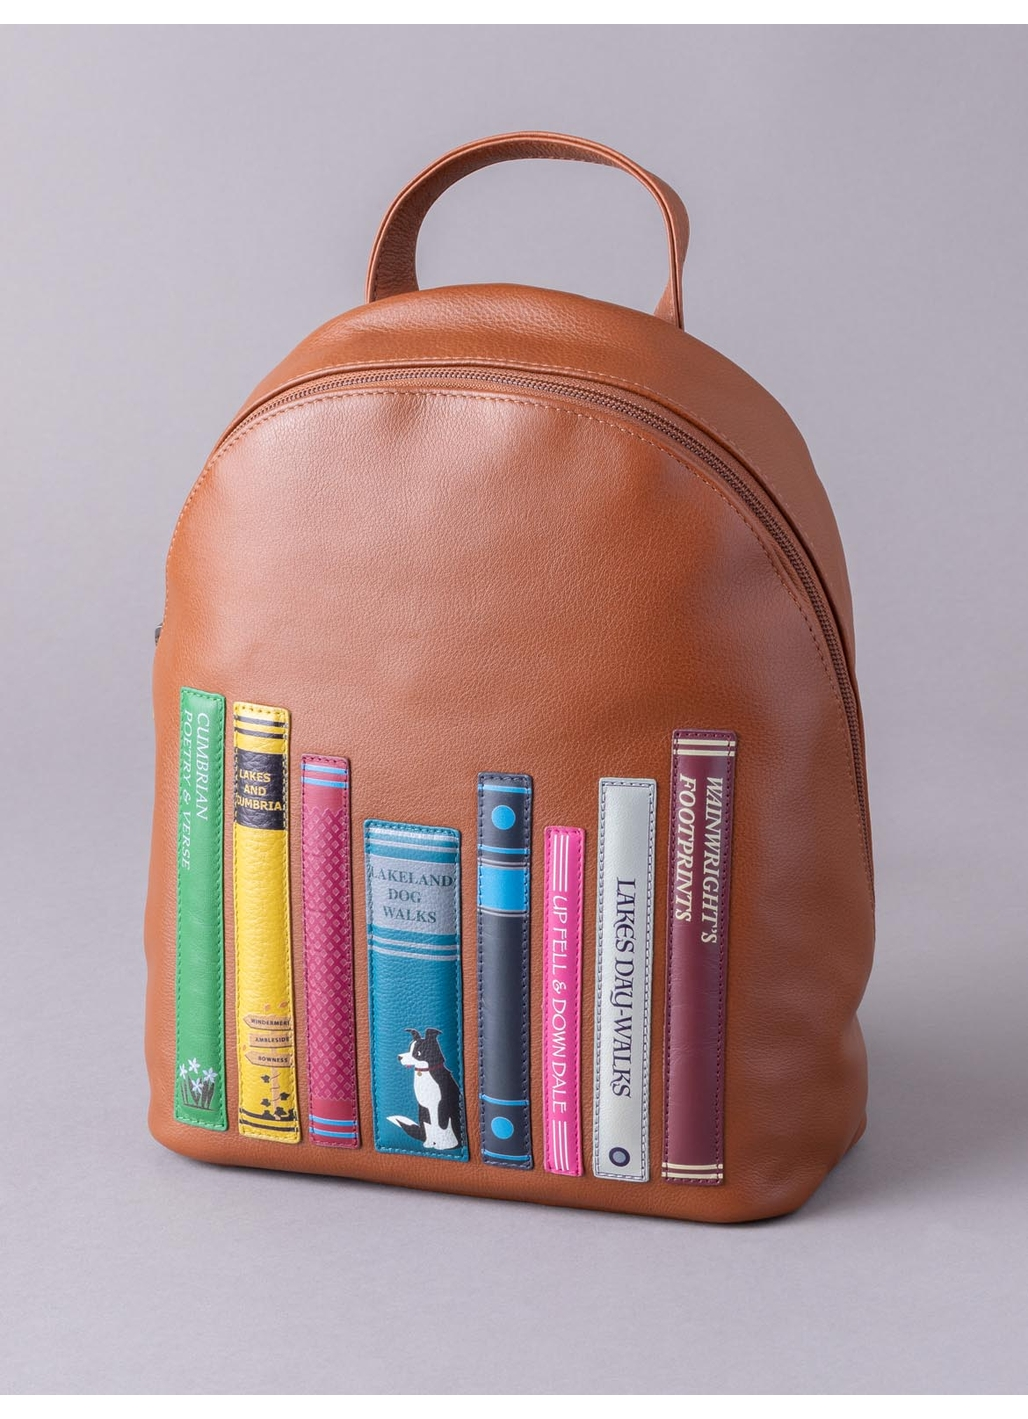 The Lakes Book Leather Backpack in Tan